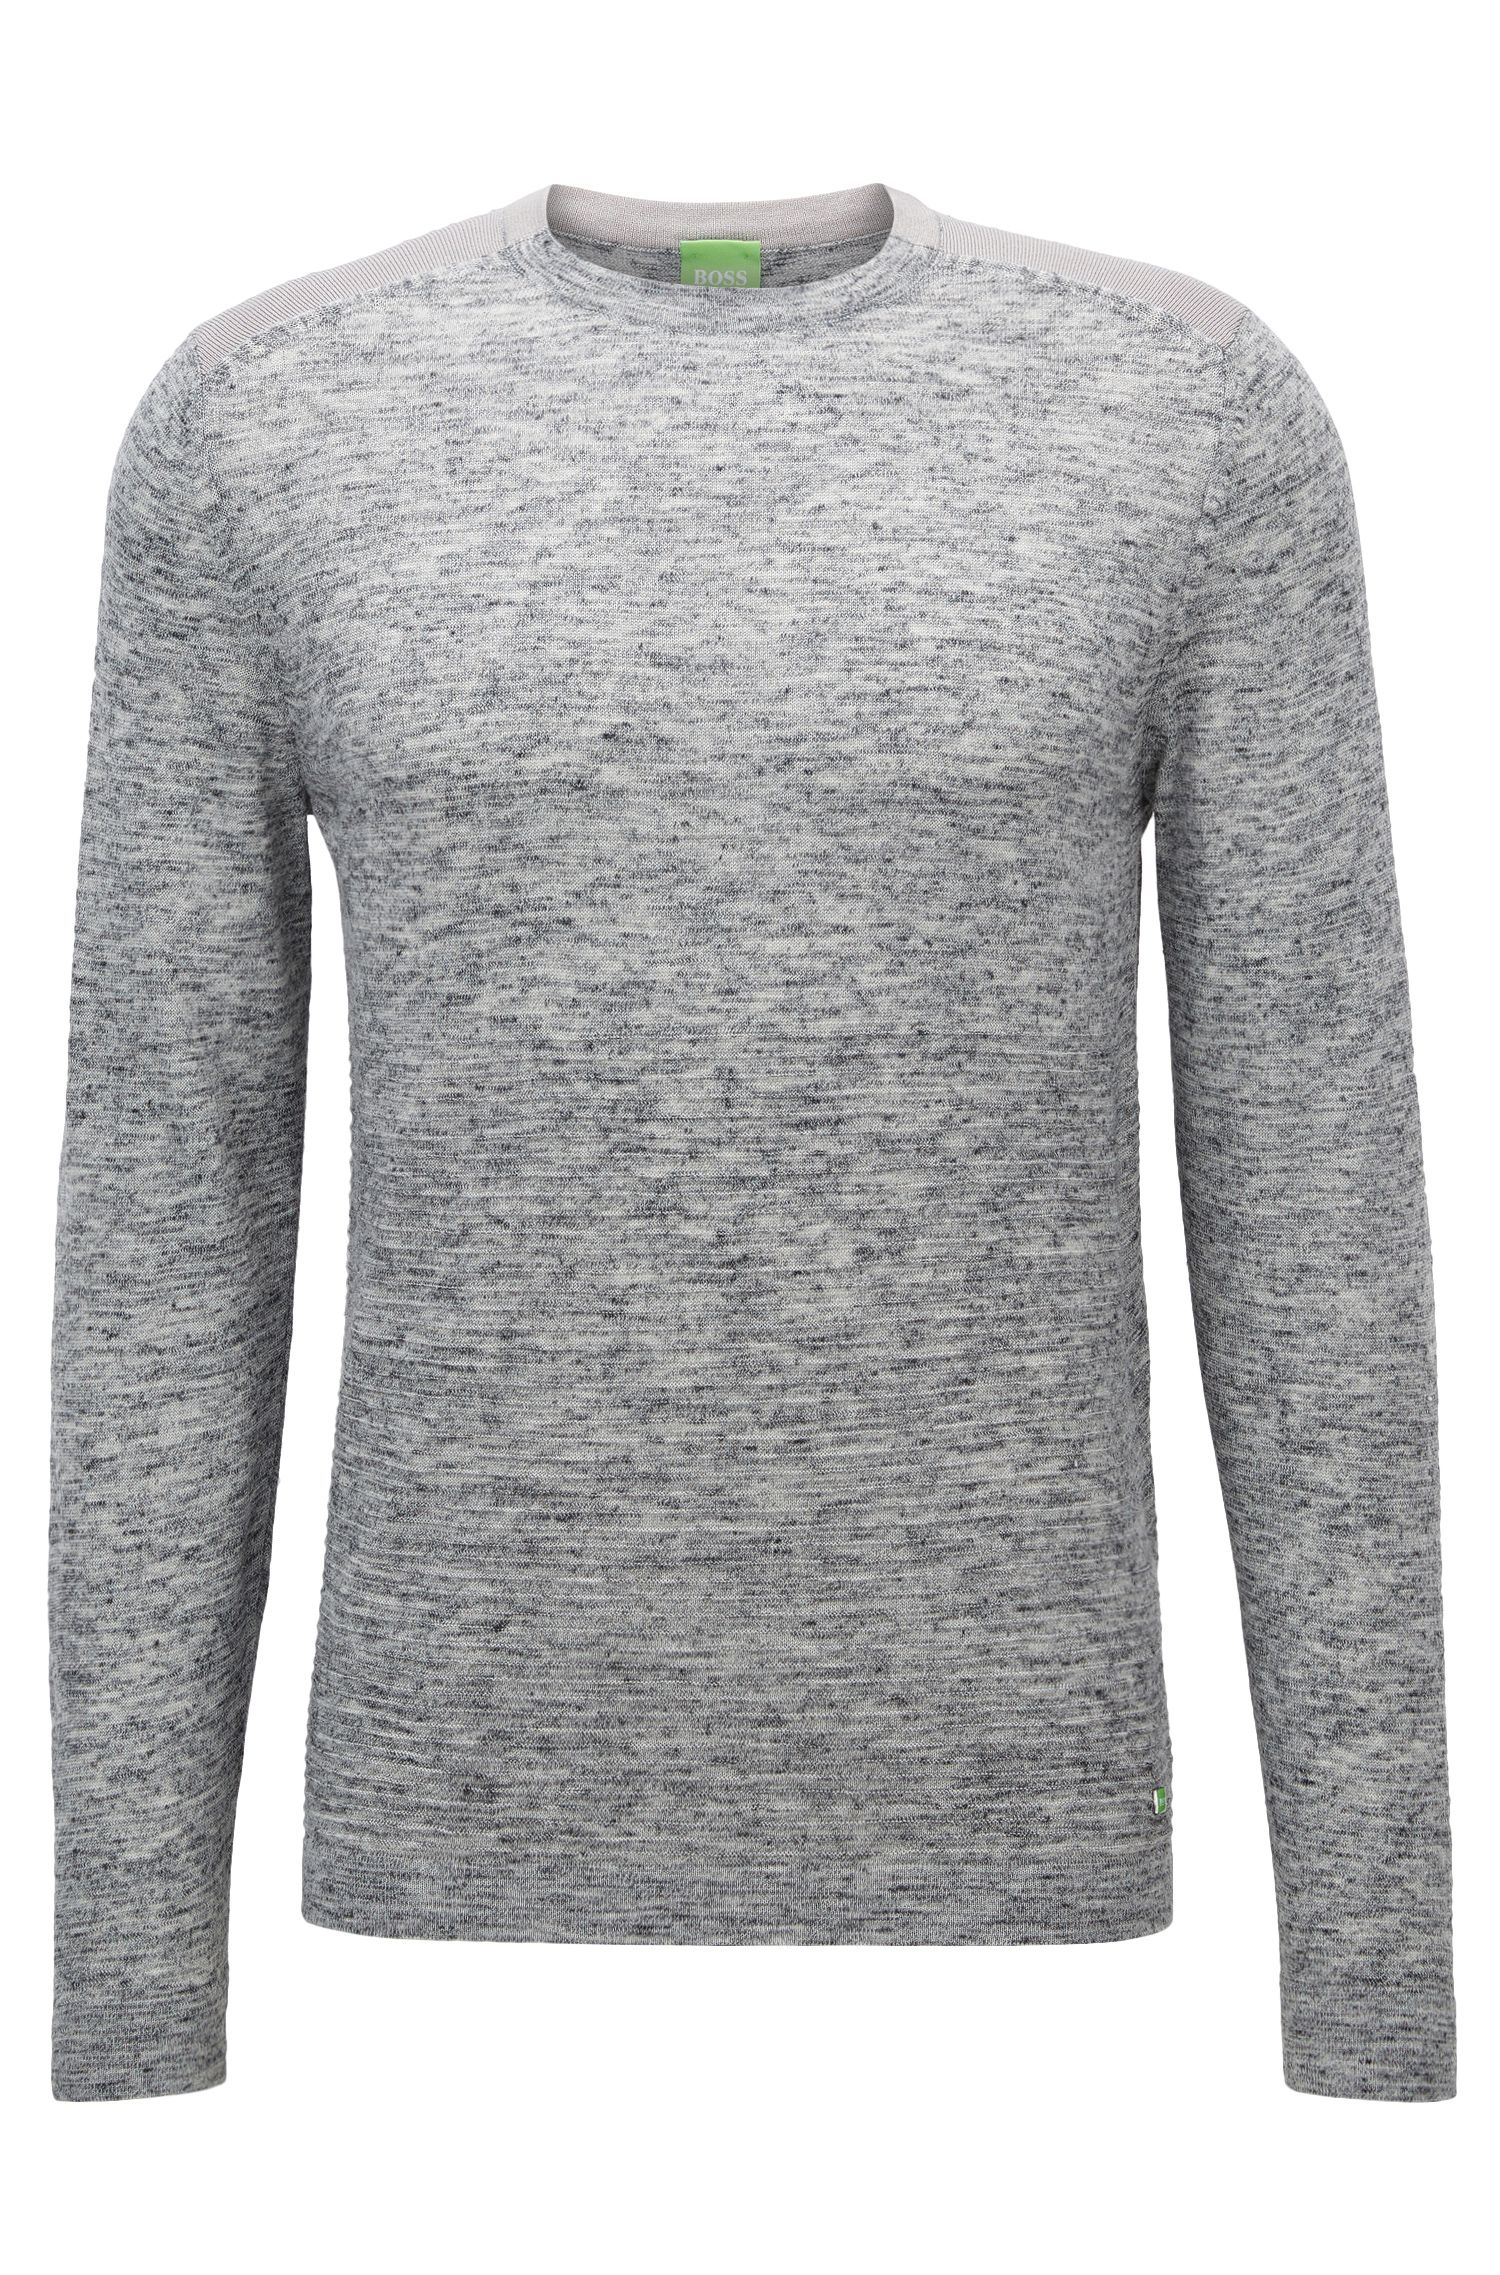 'Renny' | Melange Stretch Virgin Wool Blend Sweater